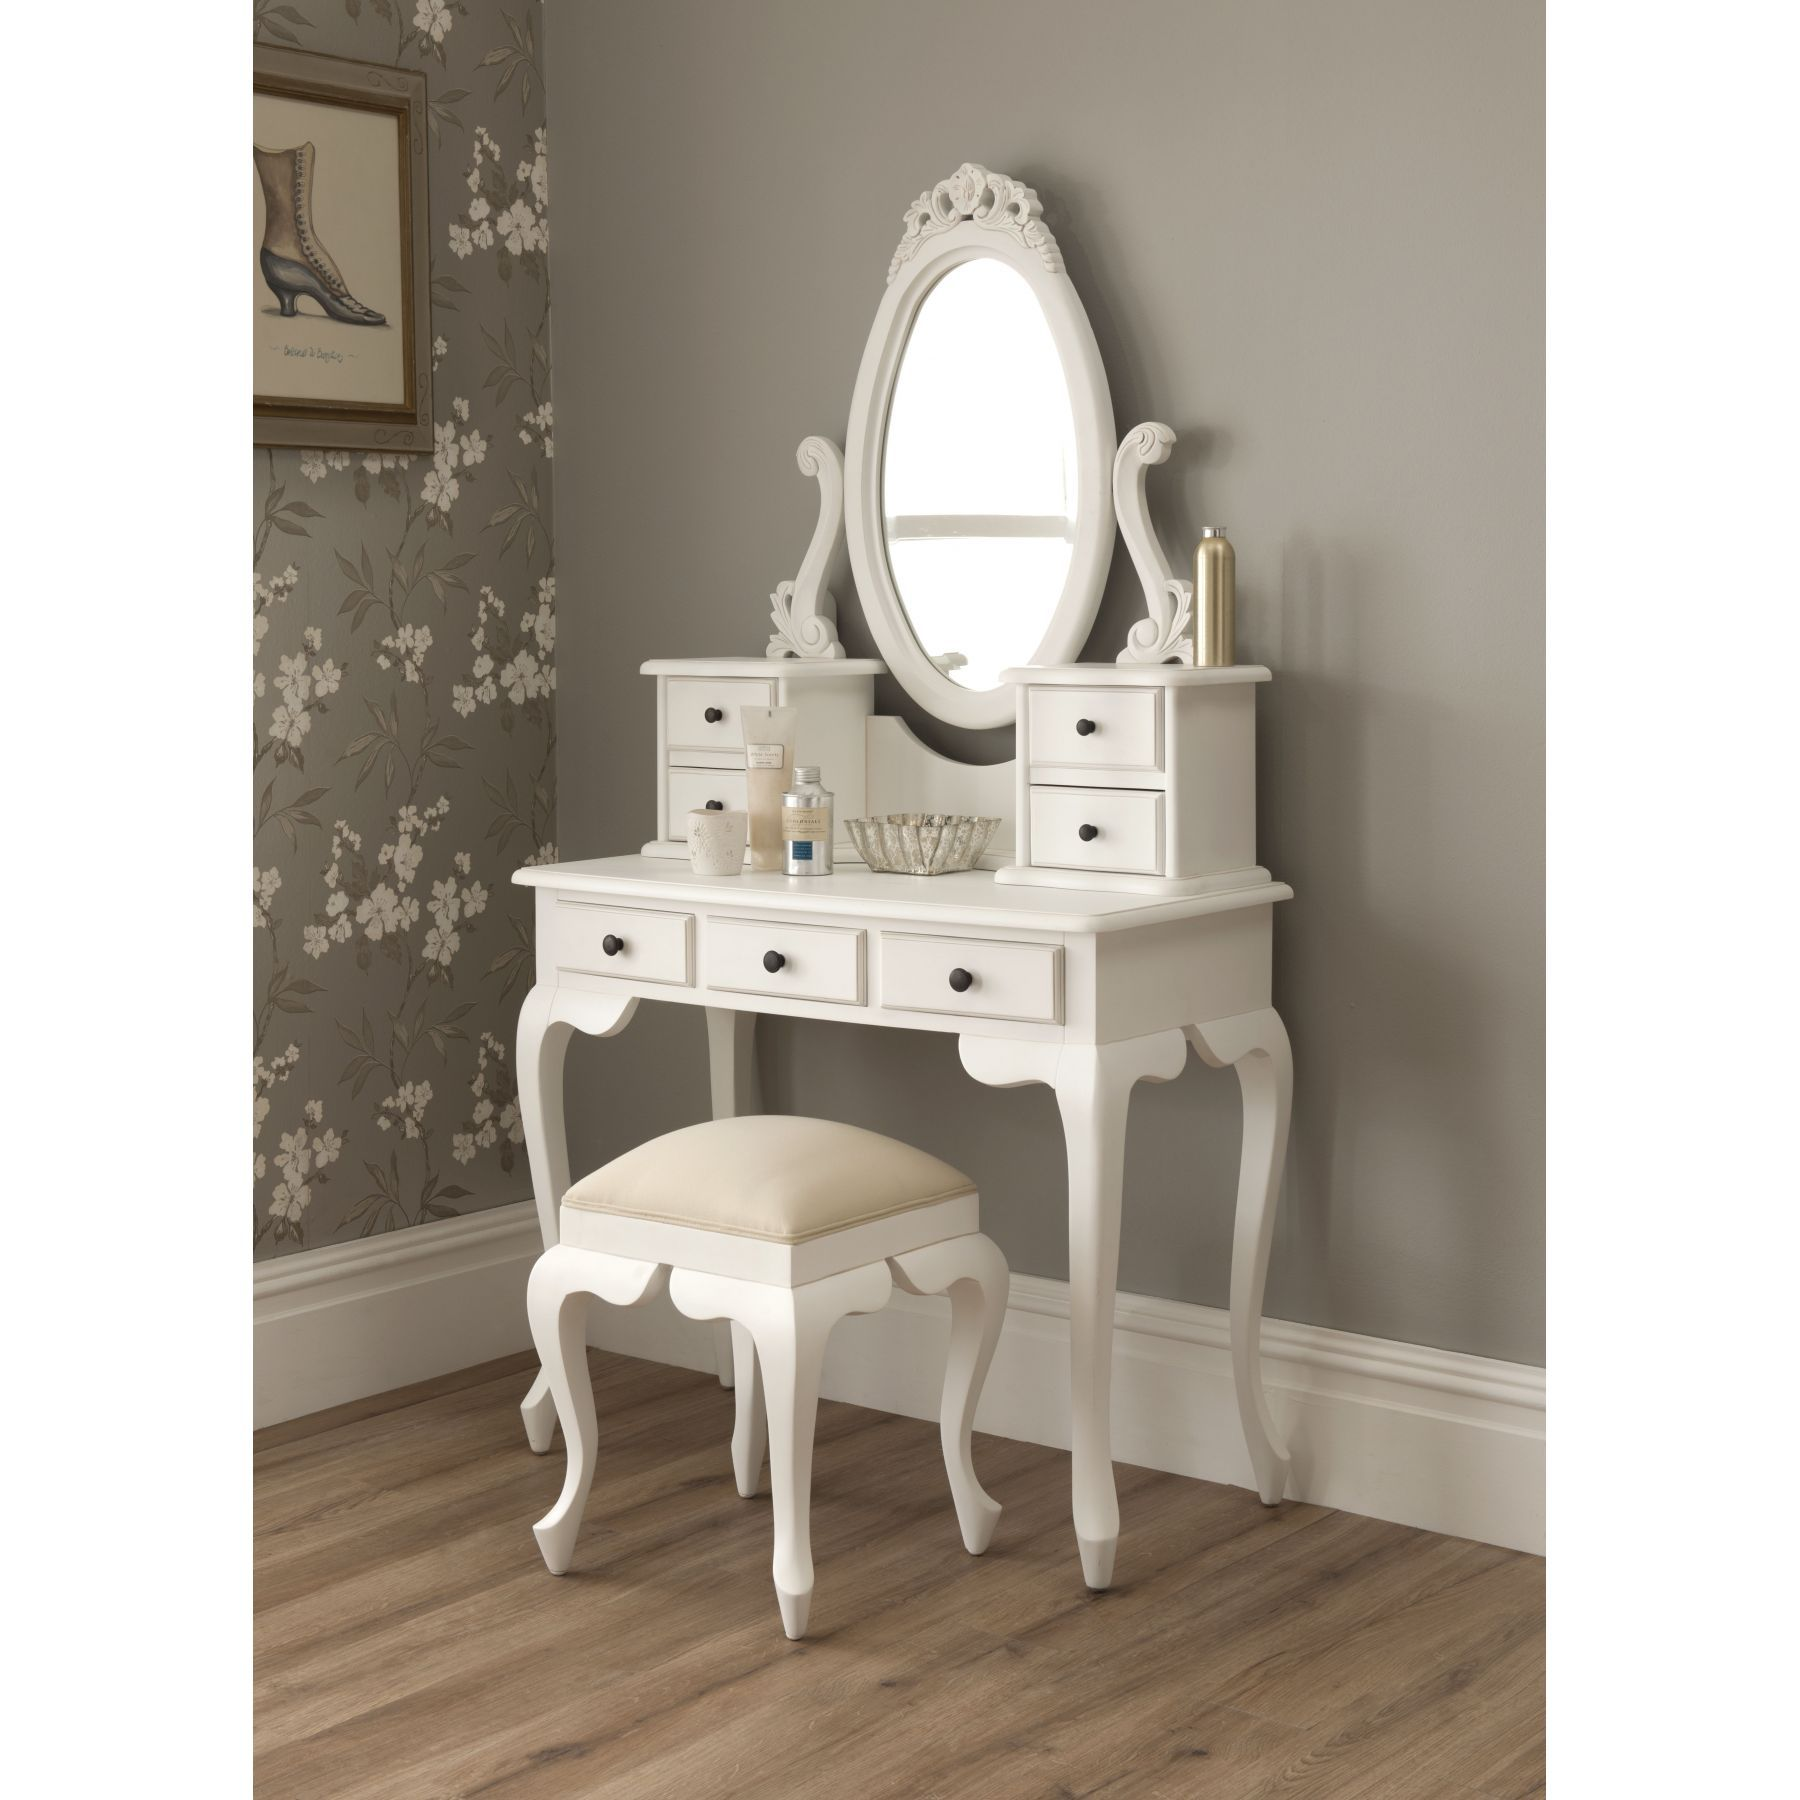 Master Bedroom Vanity bedroom vanity with models mirror oval | bedroom | pinterest